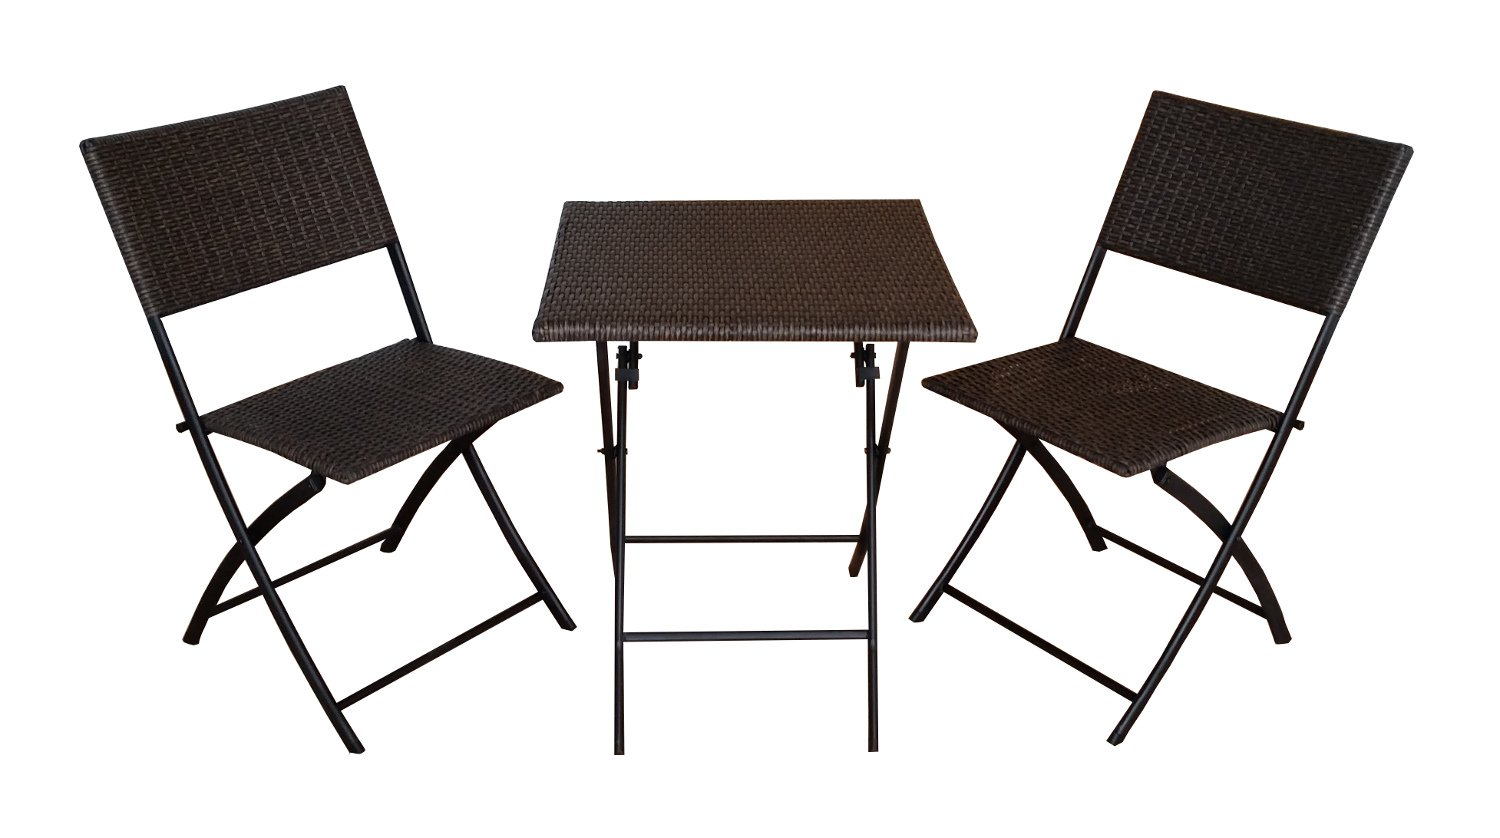 3tlg poly rattan gartenm bel set bistro set gm3pra kaufen. Black Bedroom Furniture Sets. Home Design Ideas